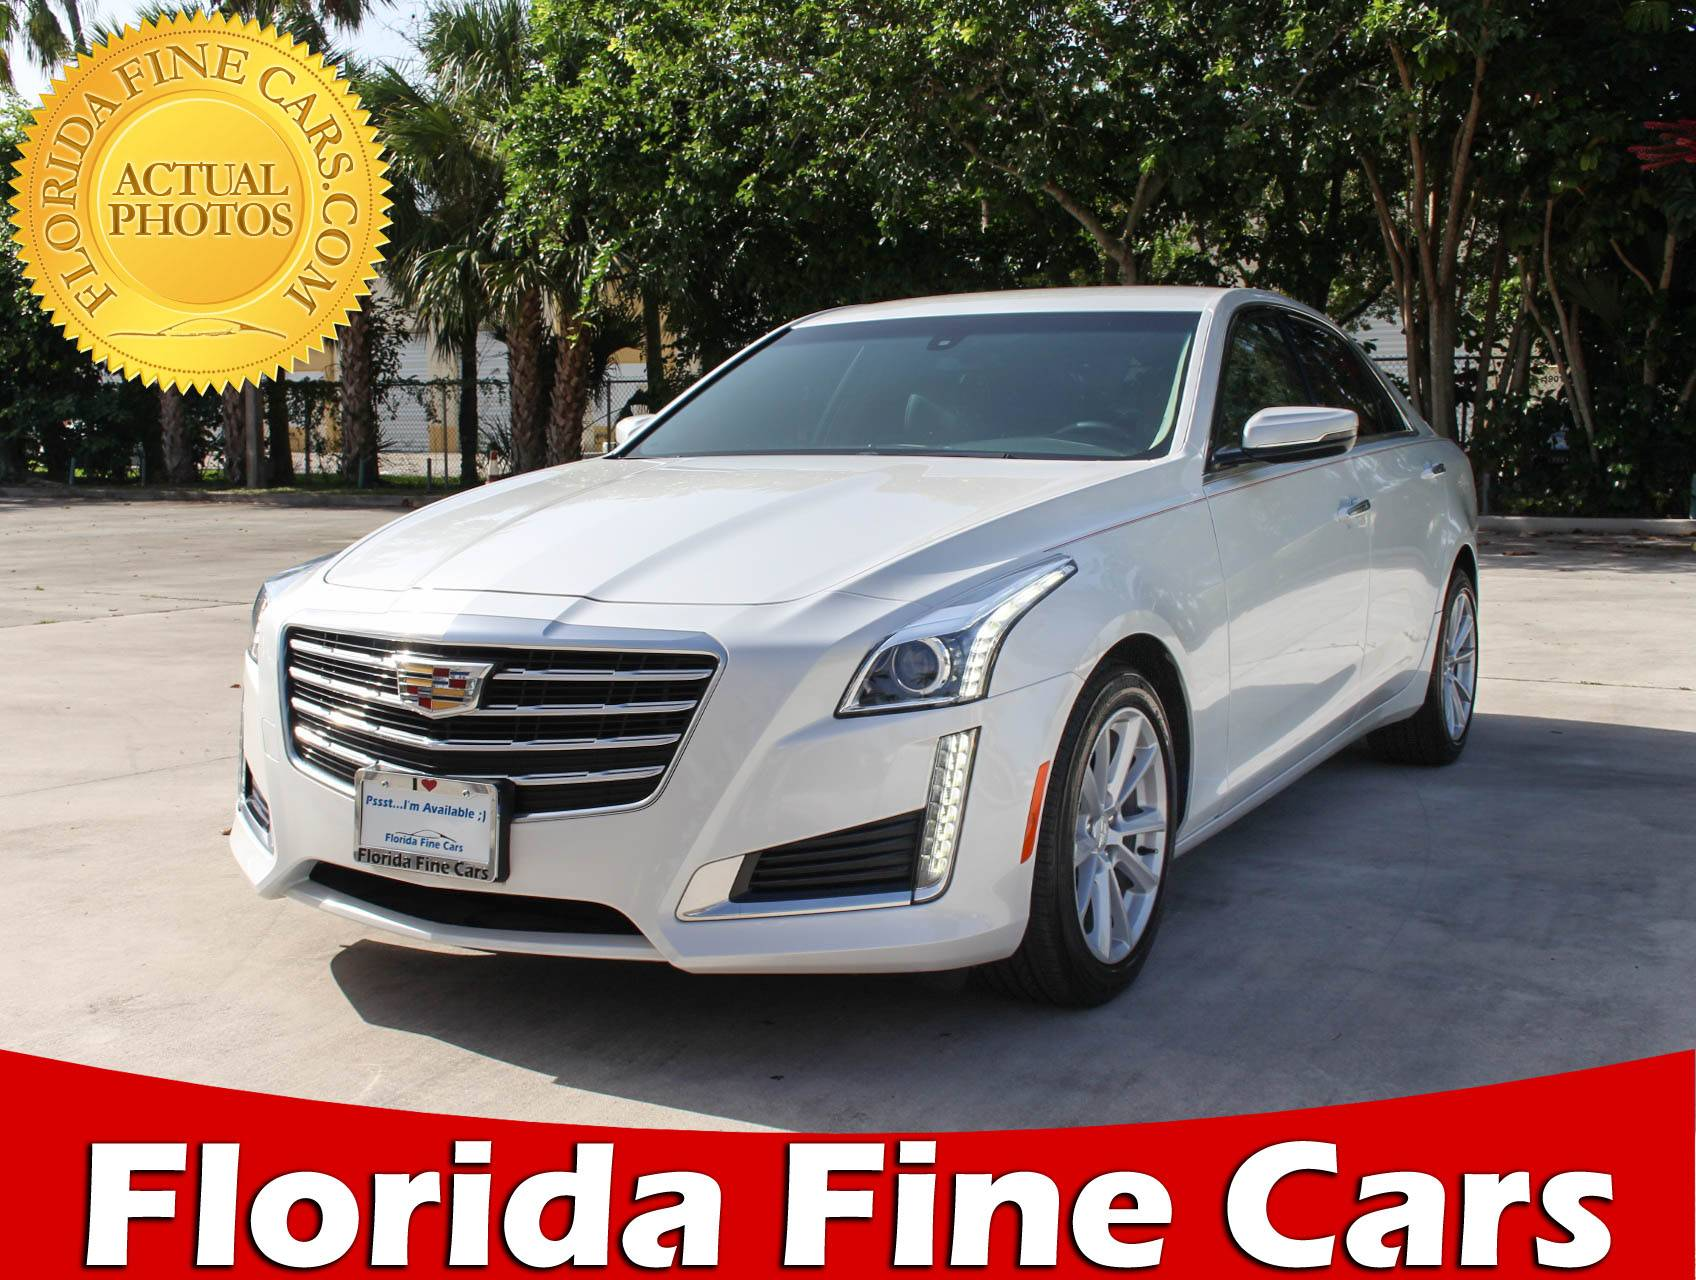 Preowned 2018 Cadillac Cts 2 0l Turbo Sedan White 96870 Florida Fine Cars In Margate